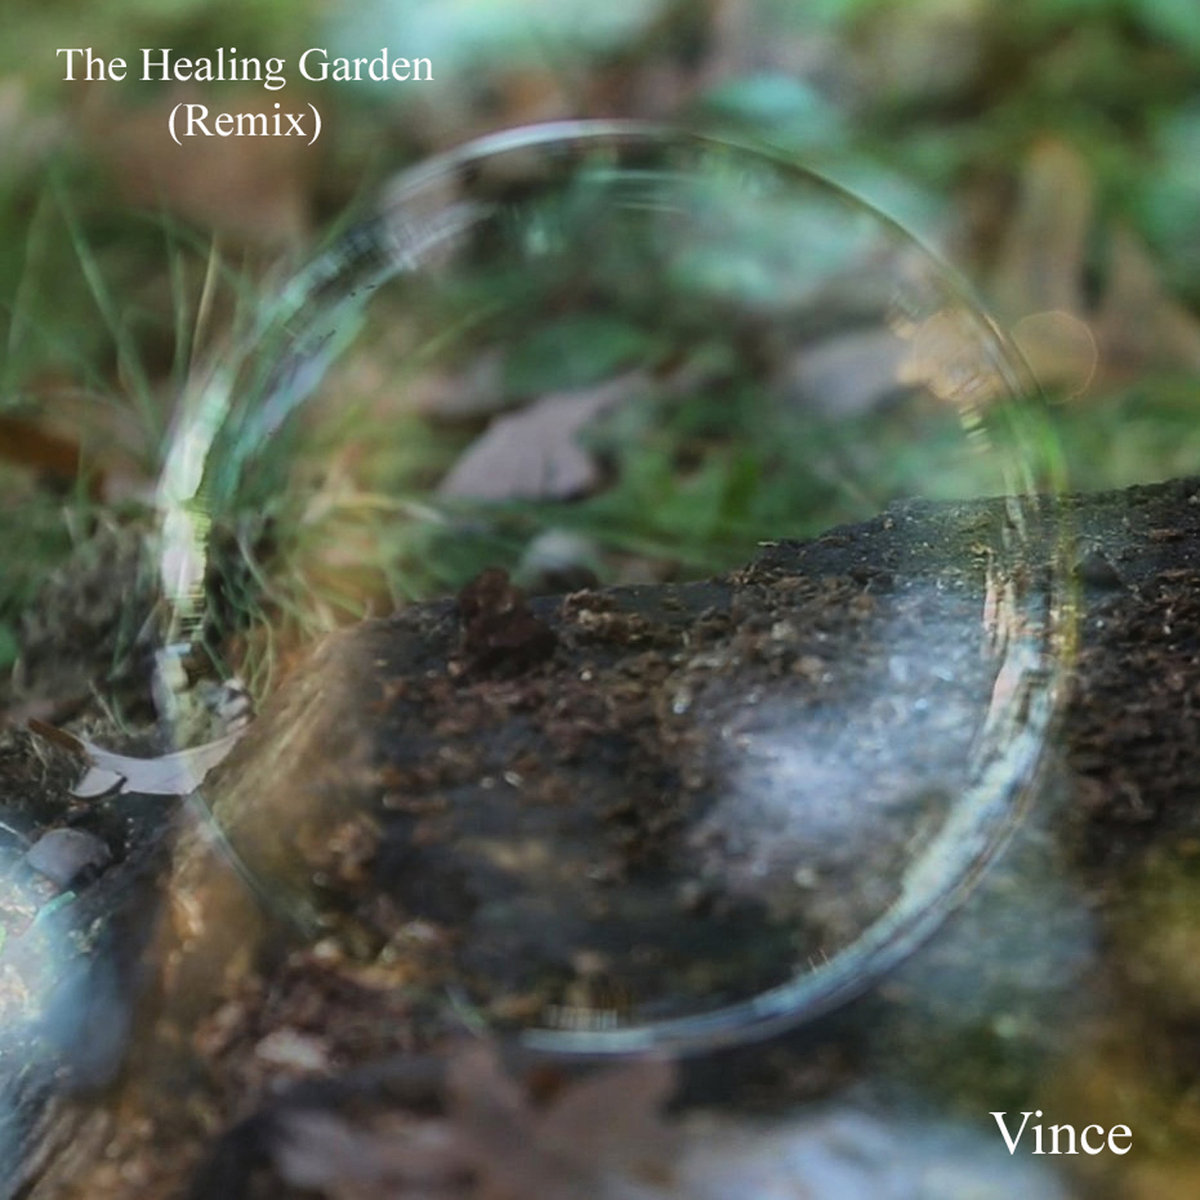 Vince - The Healing Garden (Remix) (pop, pop punk)